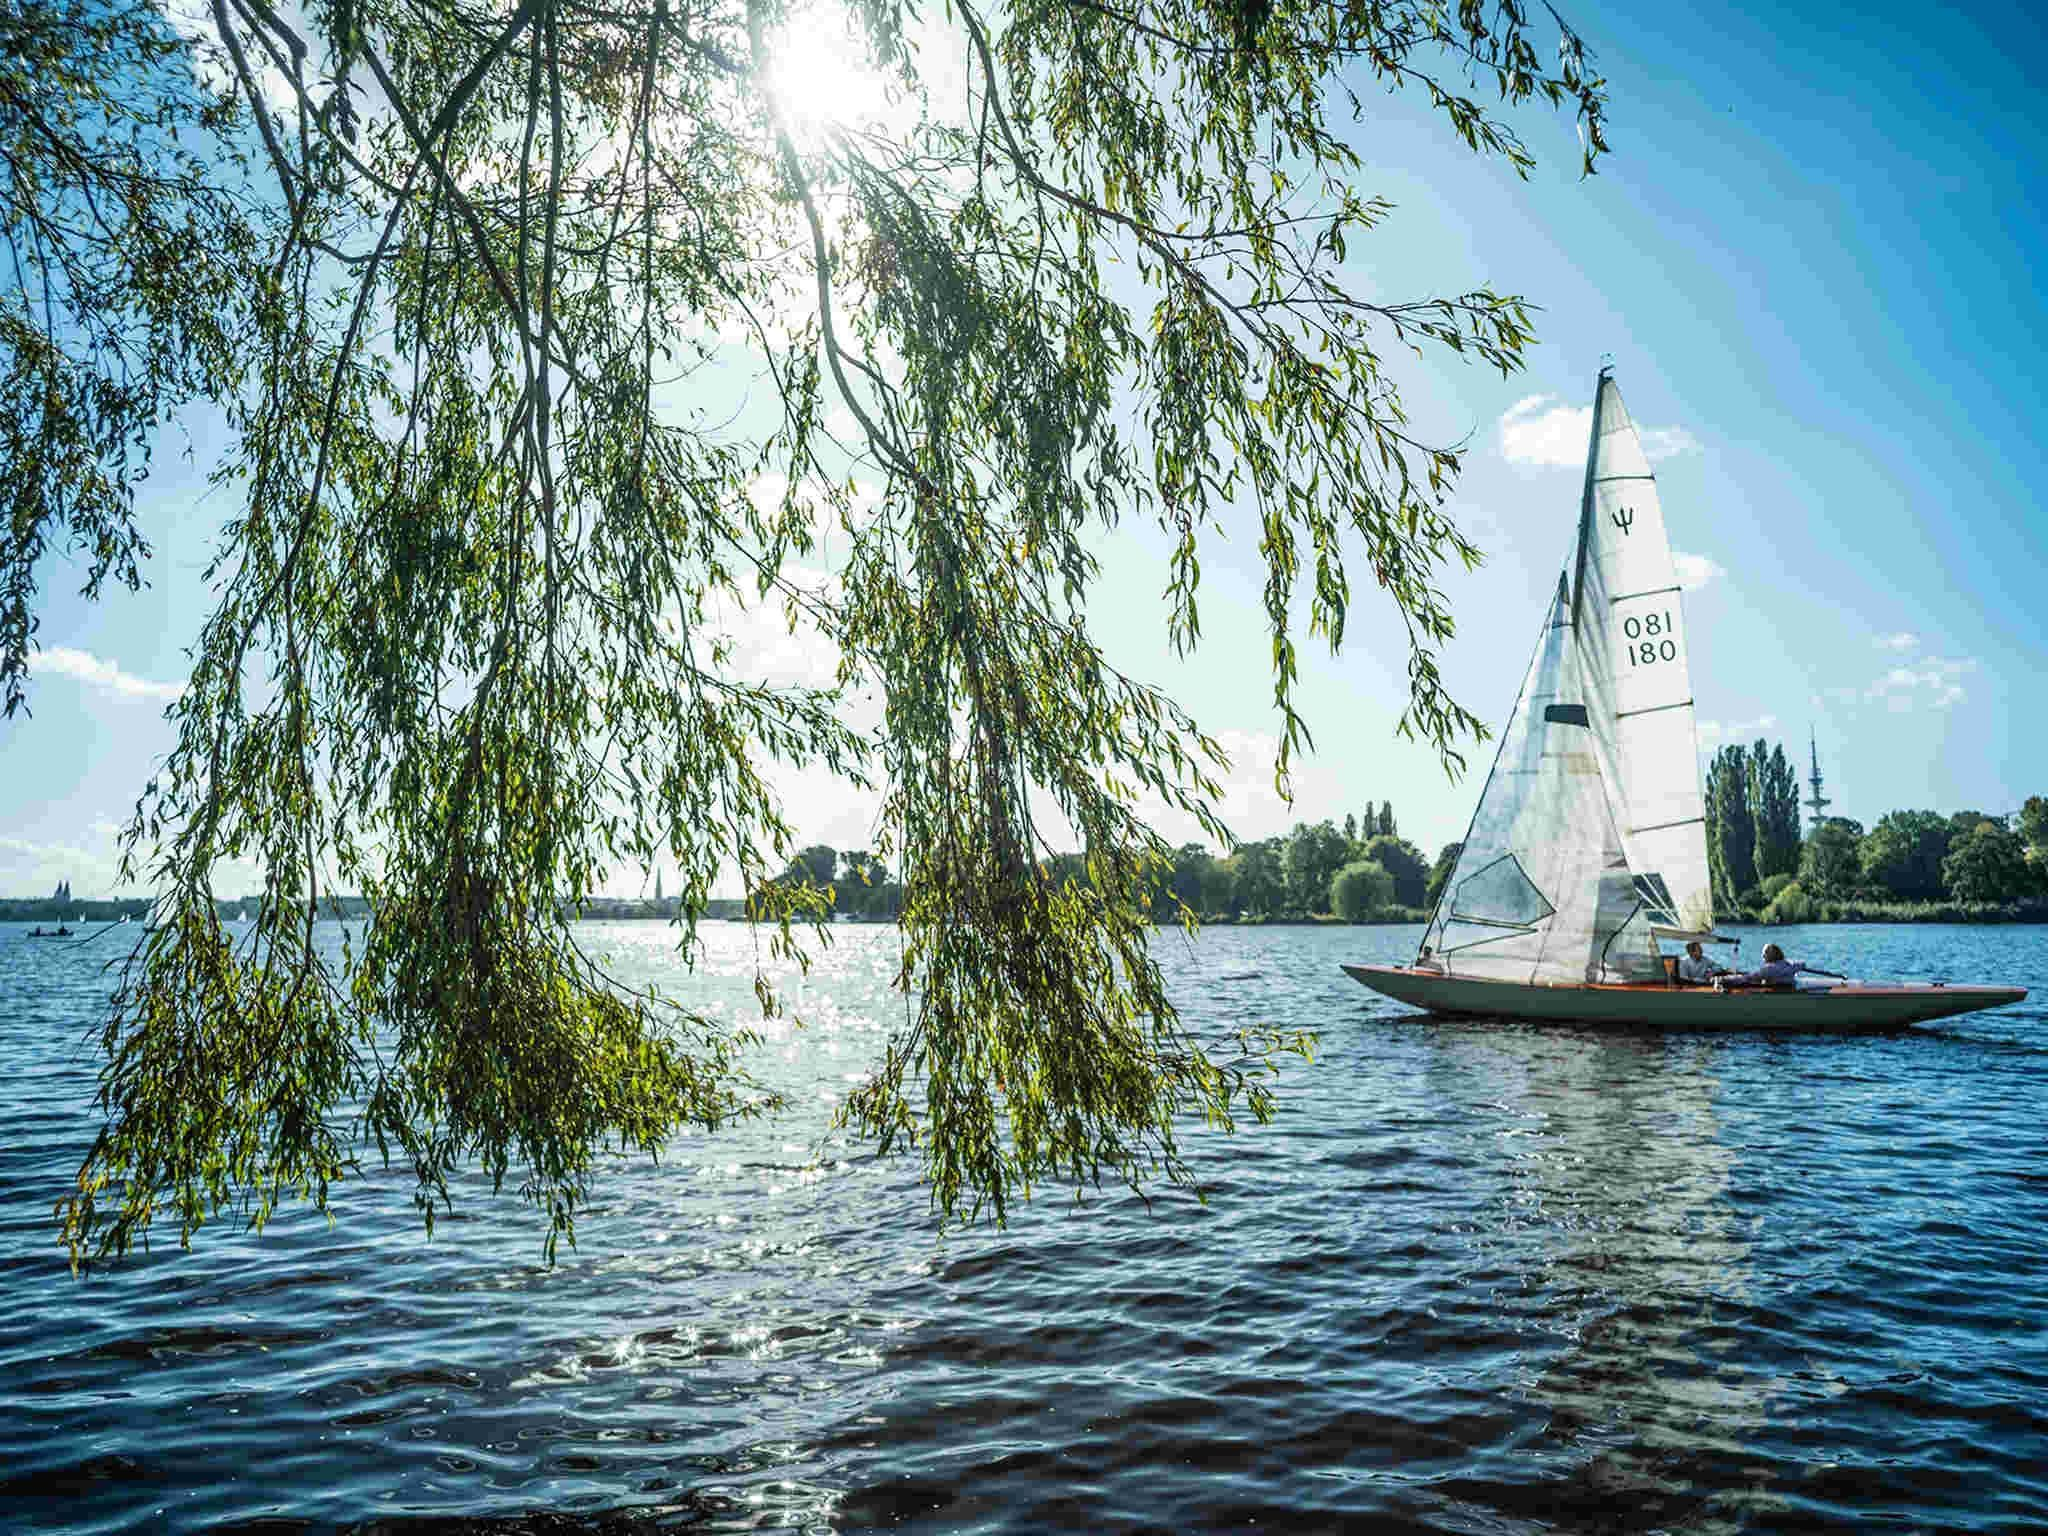 Sunshine, sail boats and the Outer Alster Außenalster